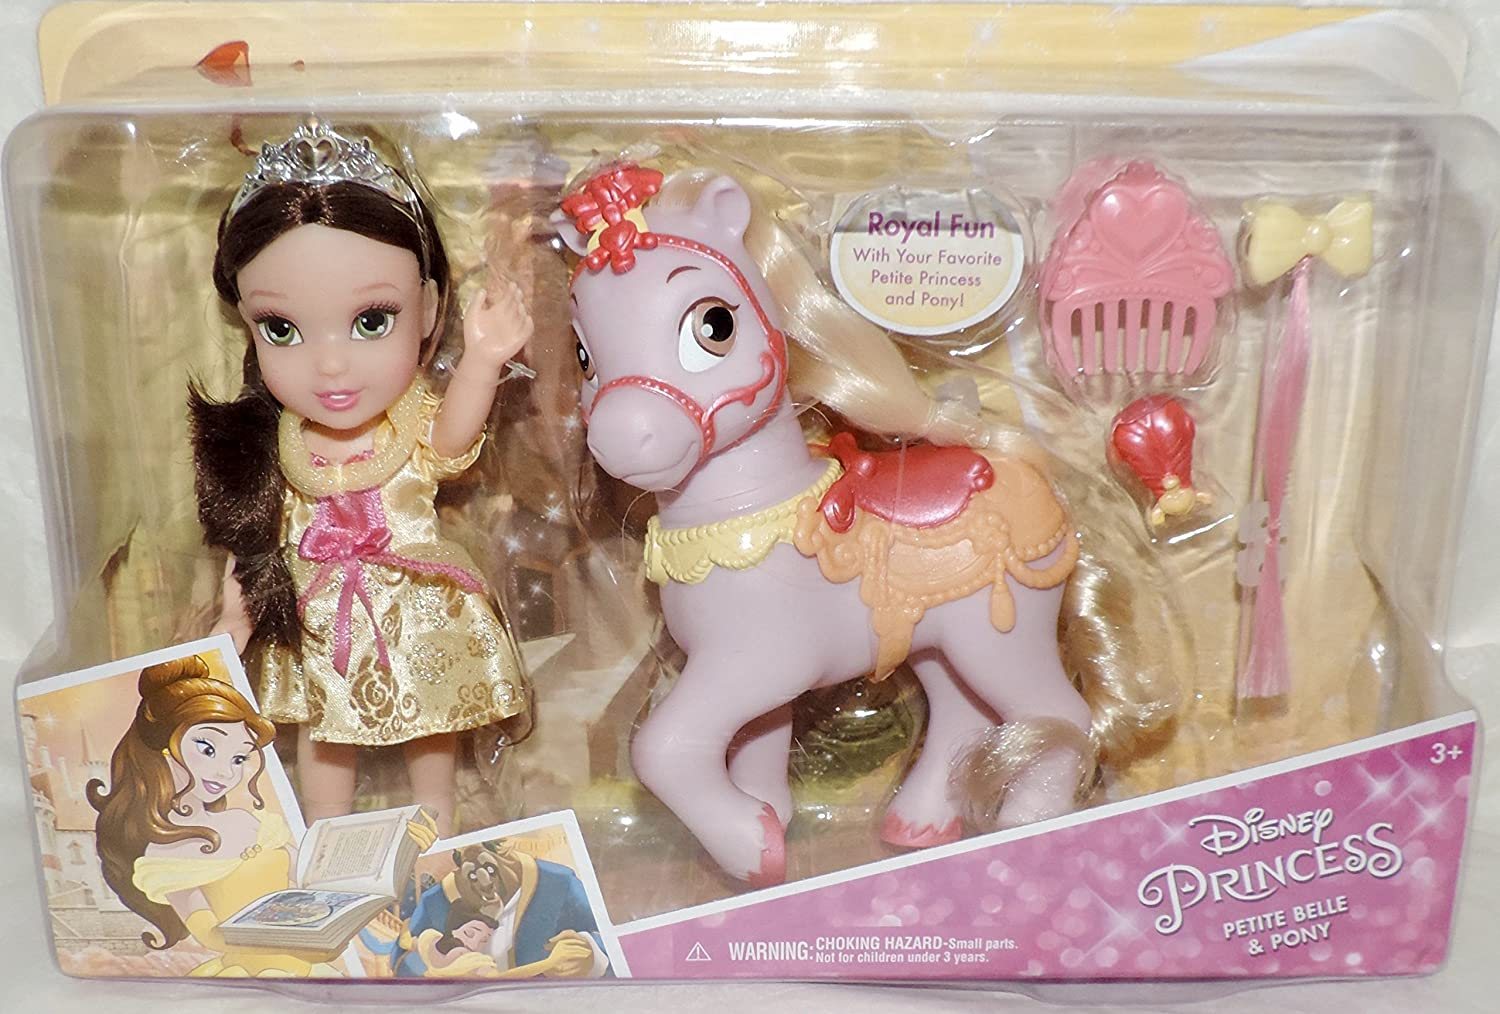 Disney Princess Petite Complete Free Shipping Belle and Doll Large-scale sale Beast the Pony Beauty